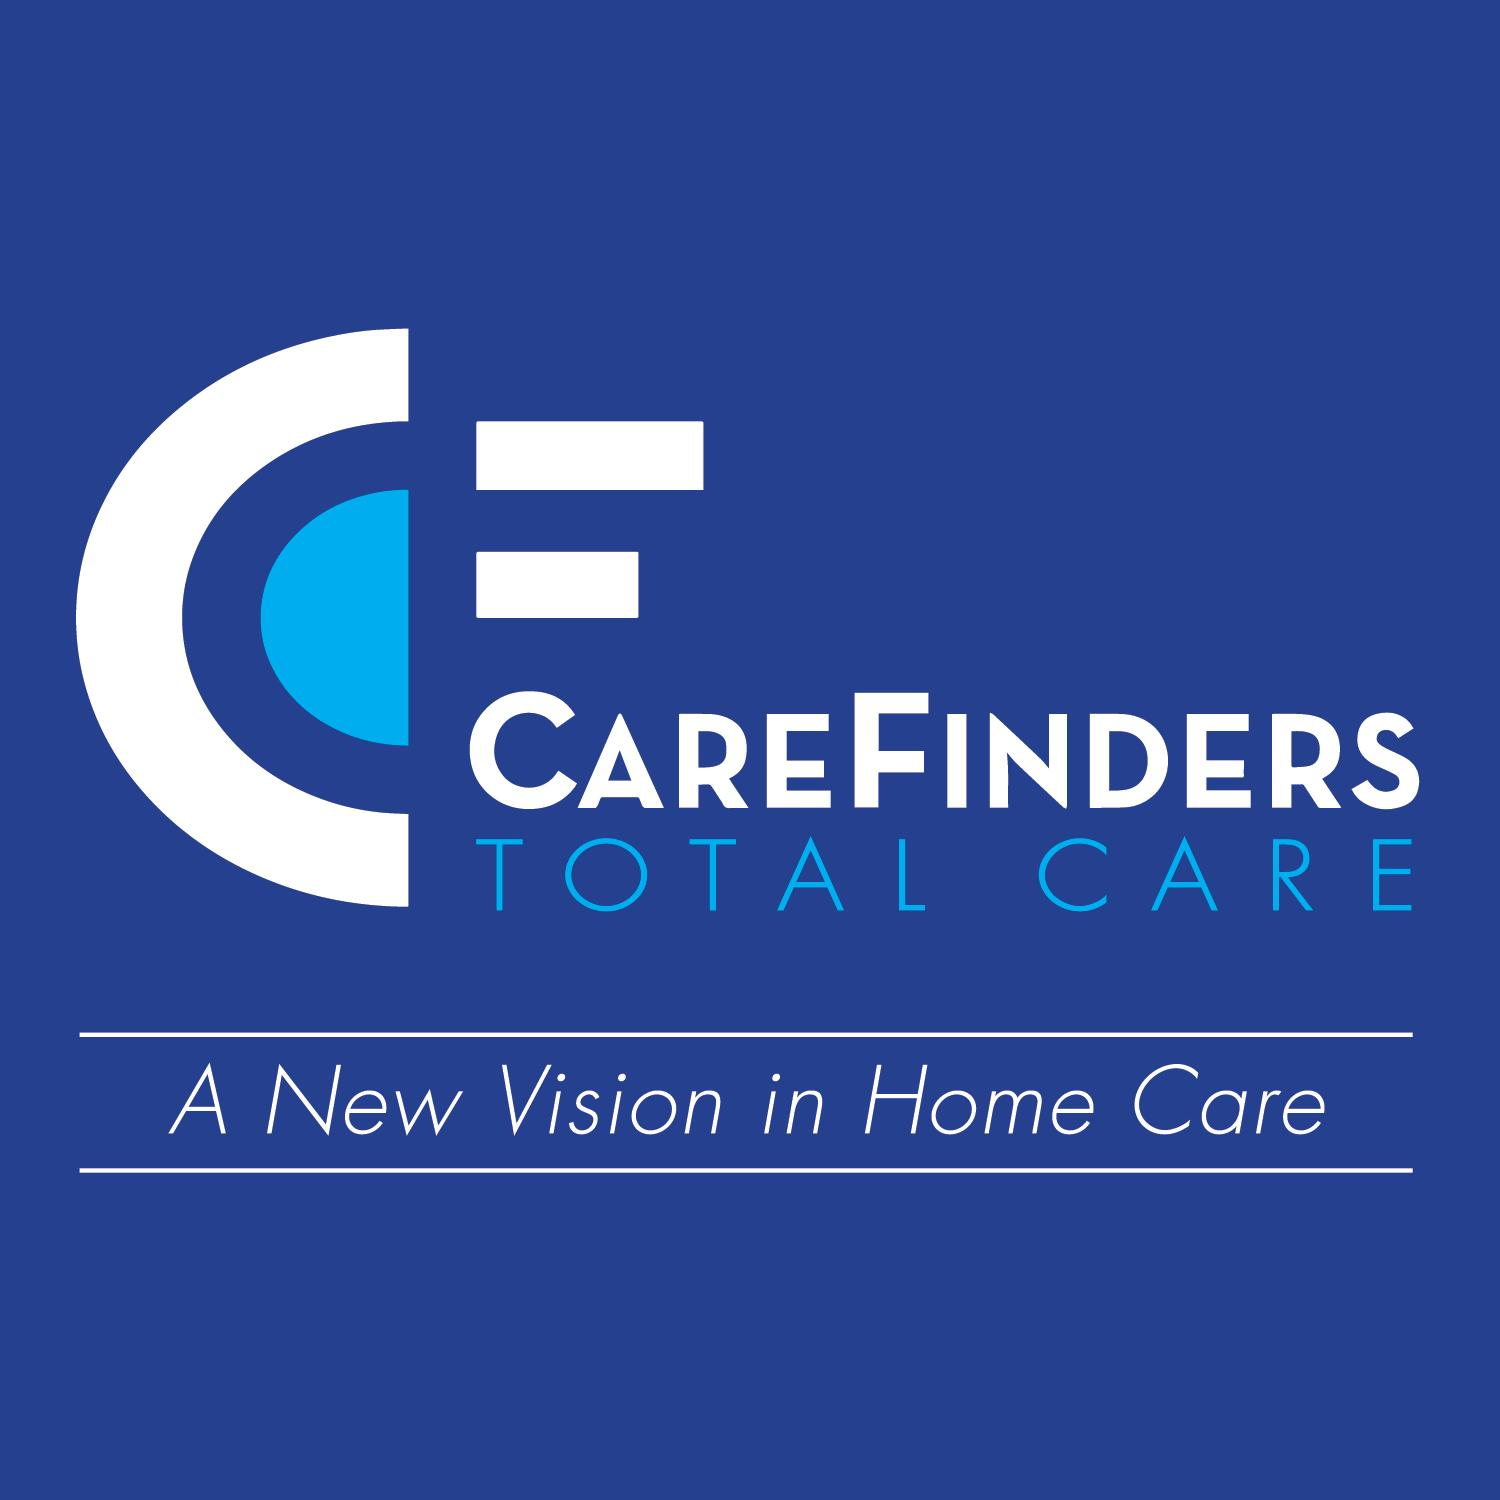 Care Finders Total Care